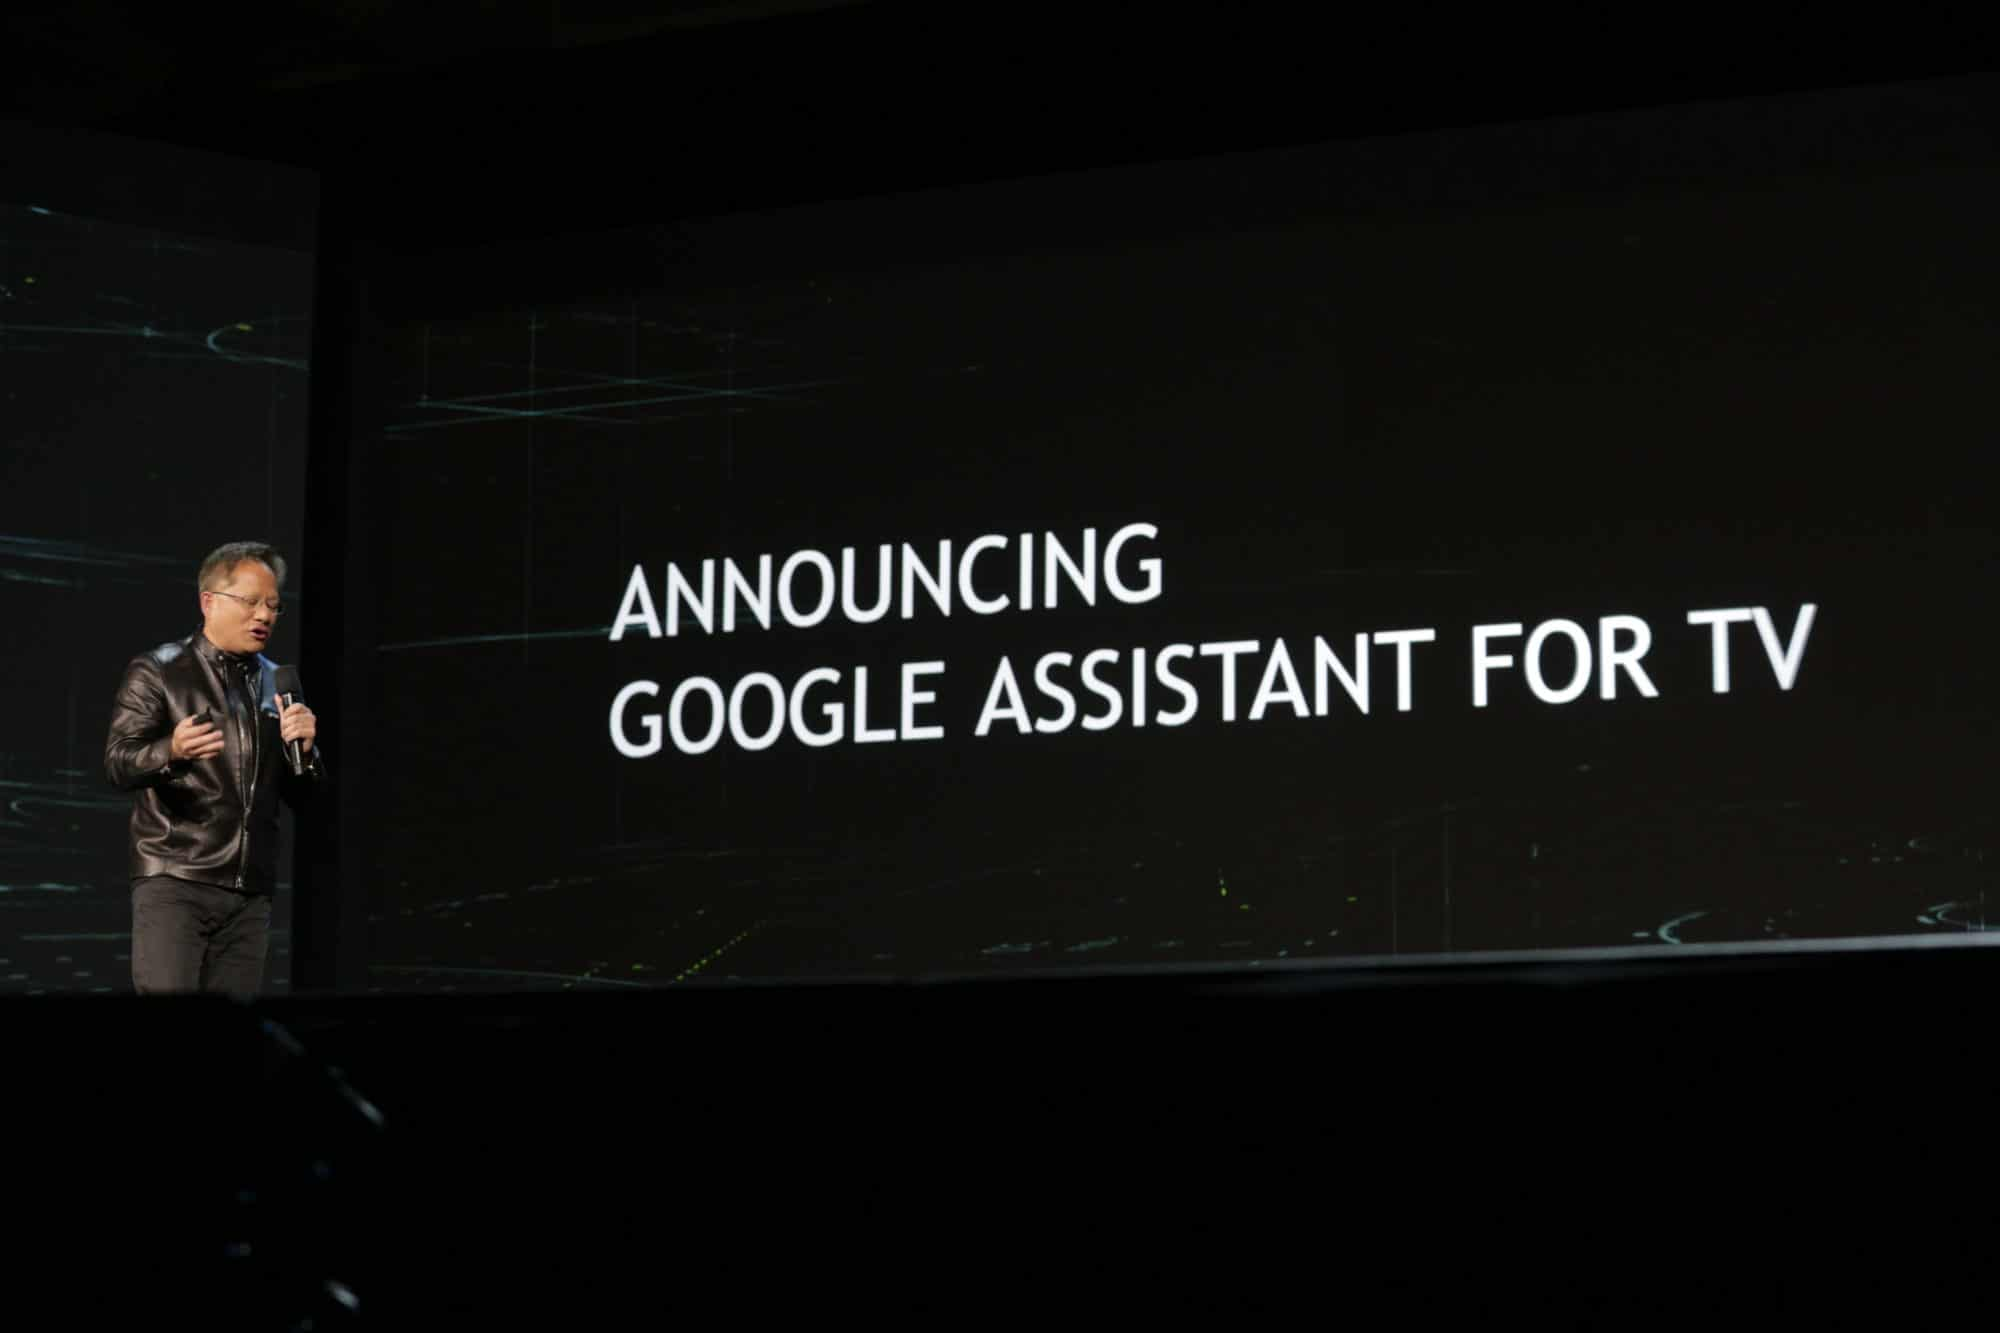 Google Assistant for TV